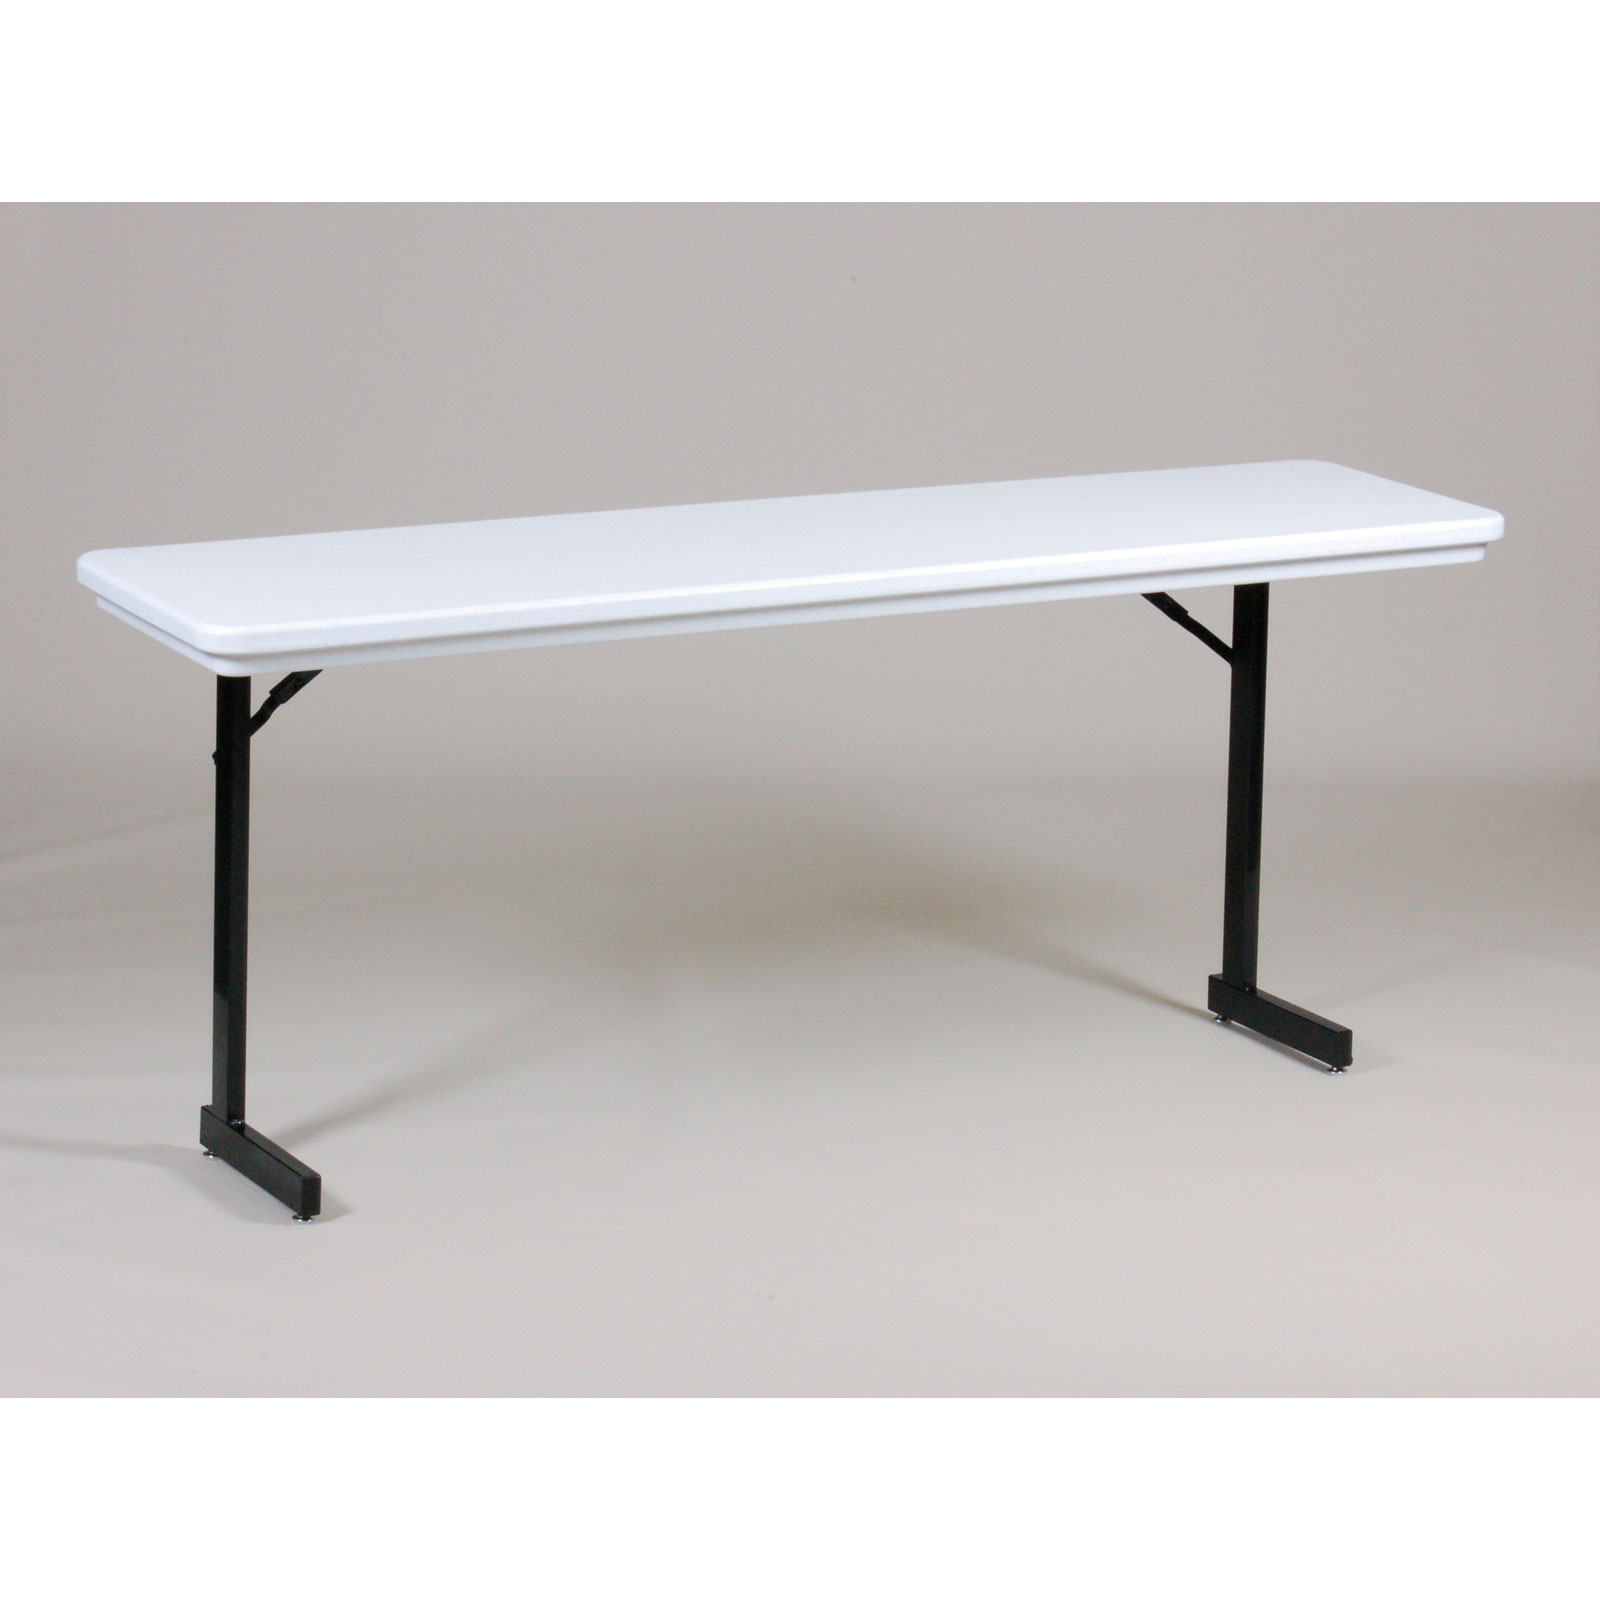 18x72 t leg folding seminar table by correll in folding tables for Table retractable